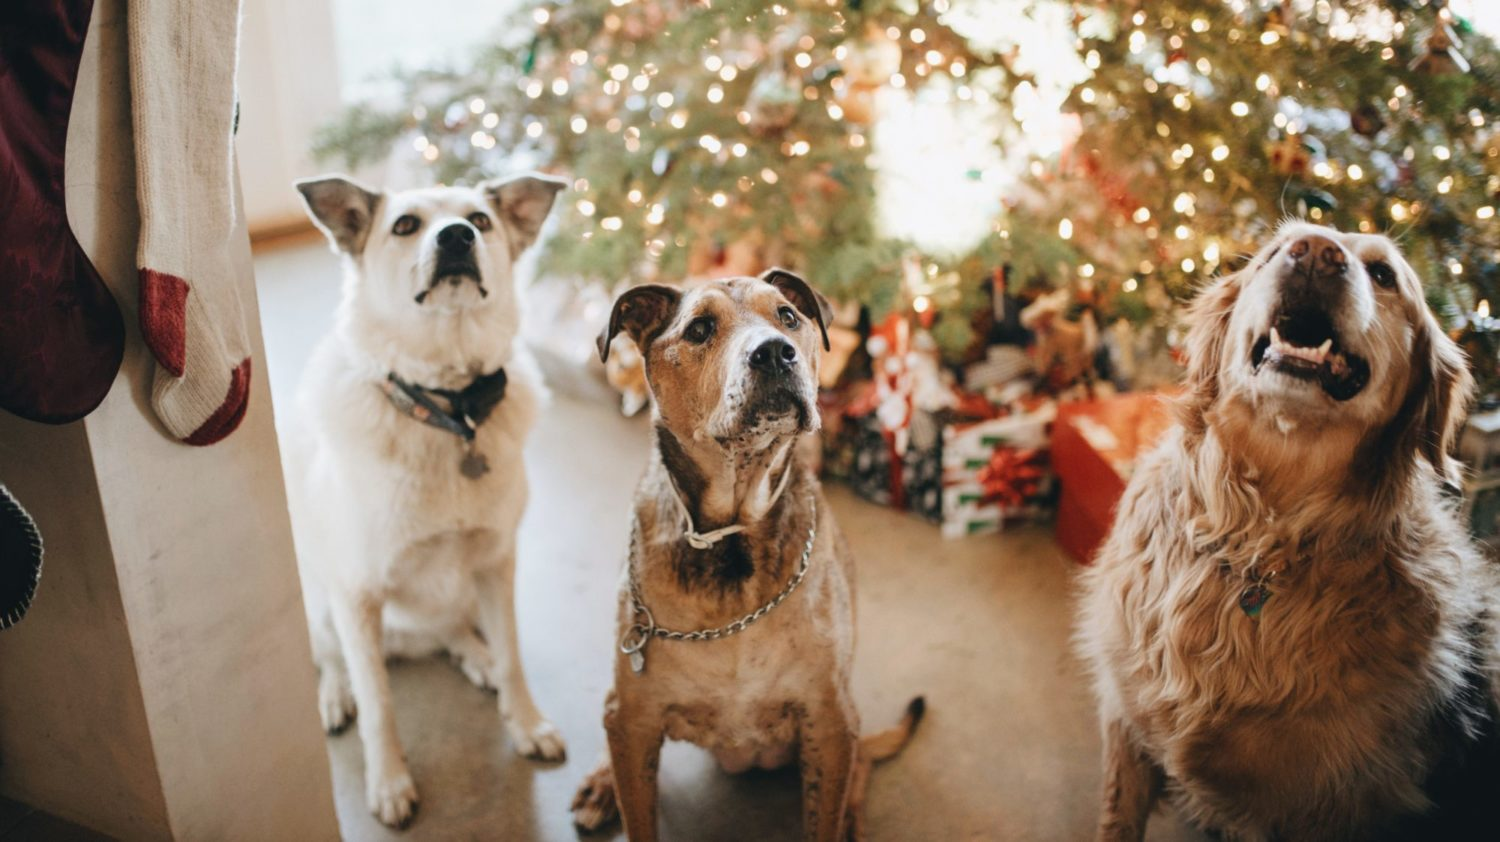 7 Vegan and Cruelty-Free Christmas Gifts for Pets